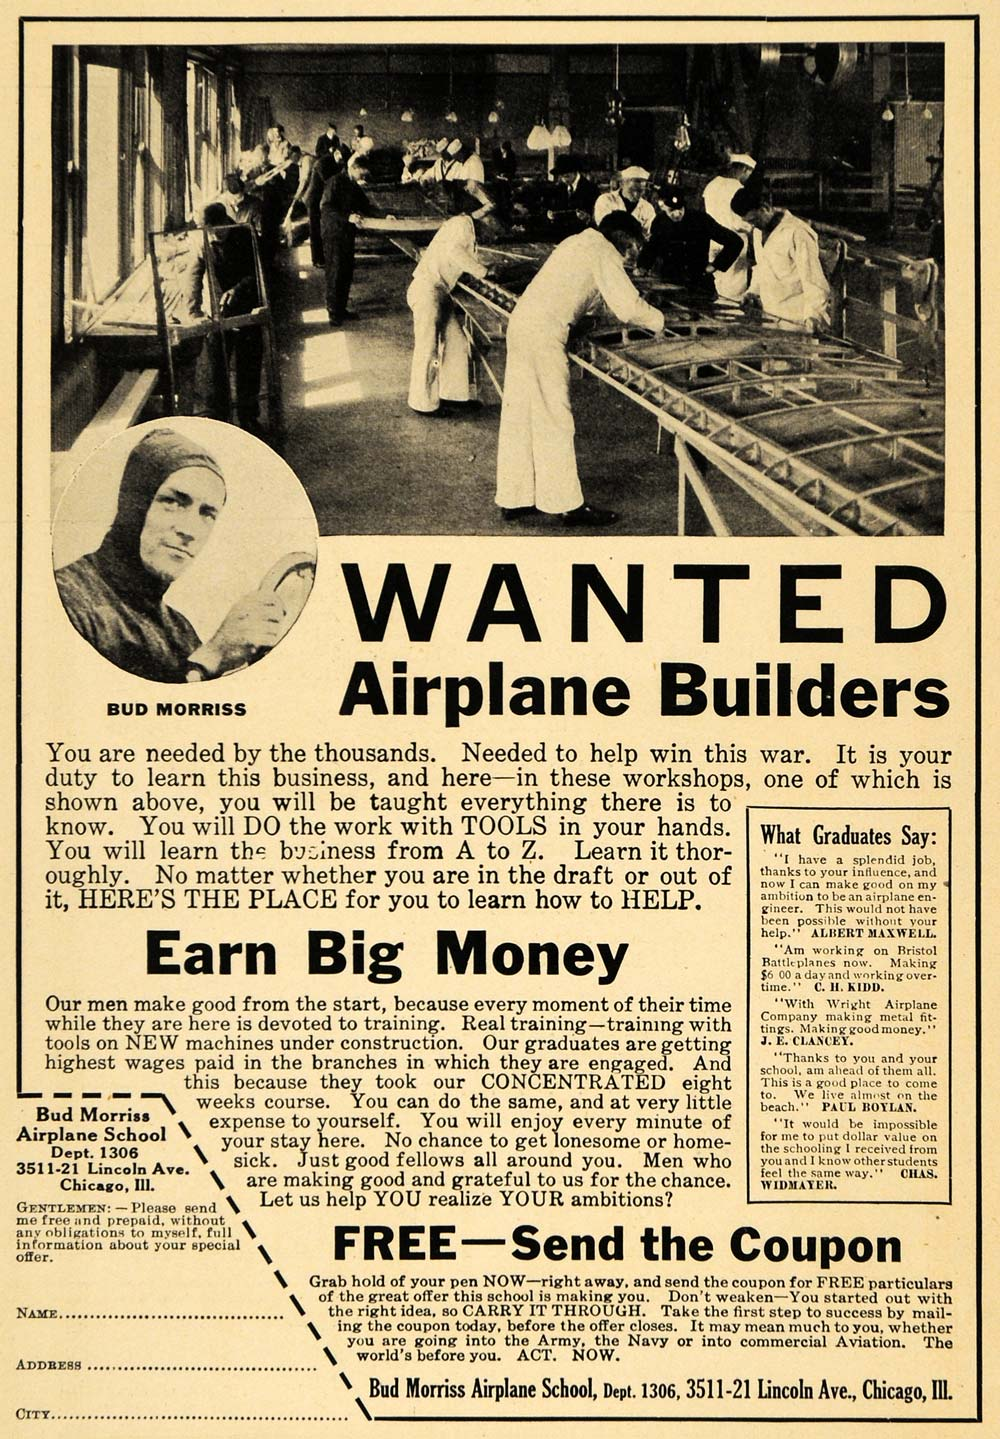 1918 Ad Airplane Builders Wanted Bud Morriss C. H. Kidd - ORIGINAL ILW1